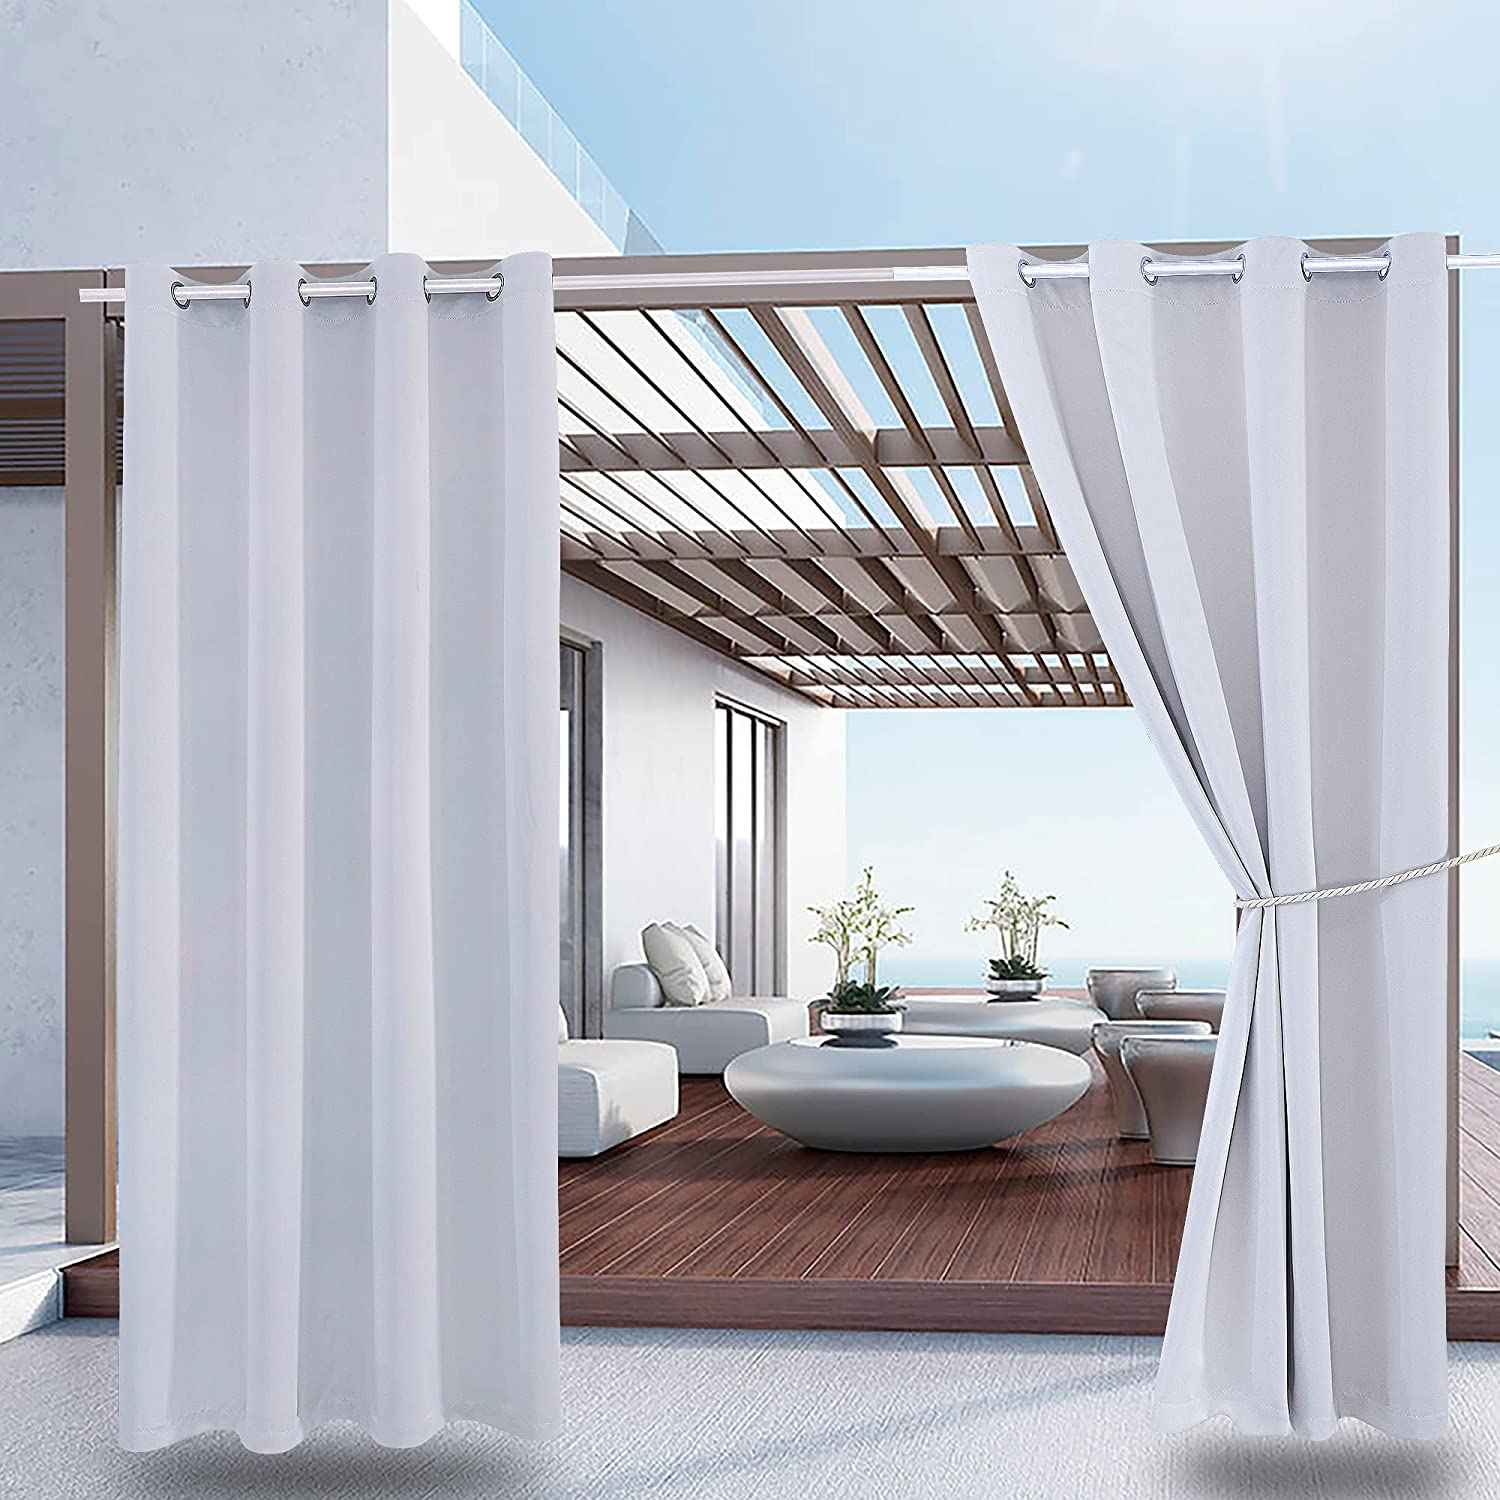 2 Panels Waterproof Outdoor Curtain Direct store W52 Heavy 230GSM L84 Dut San Francisco Mall - x